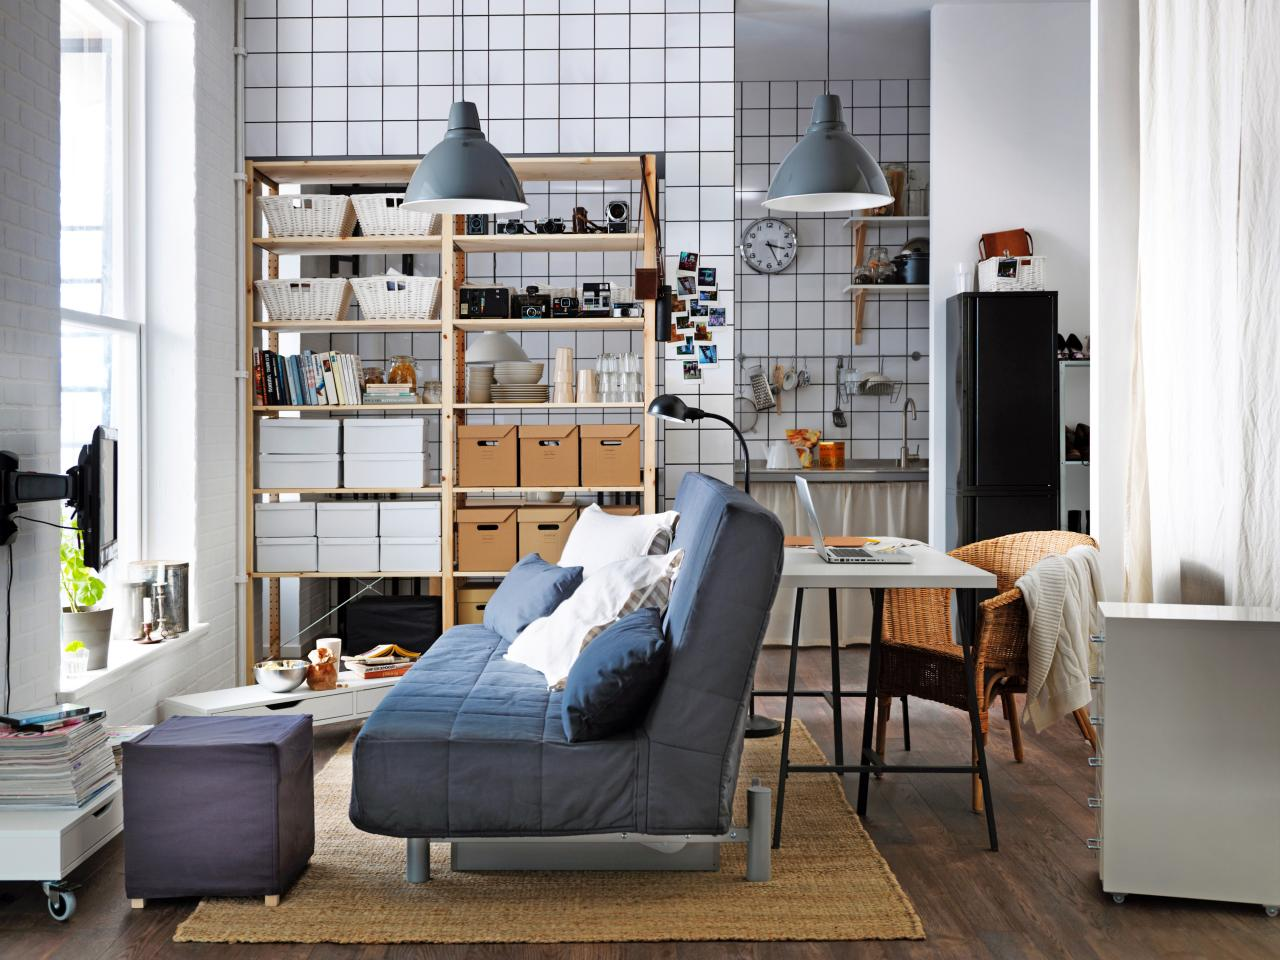 12 design ideas for your studio apartment hgtv 39 s for Studio apartment living ideas